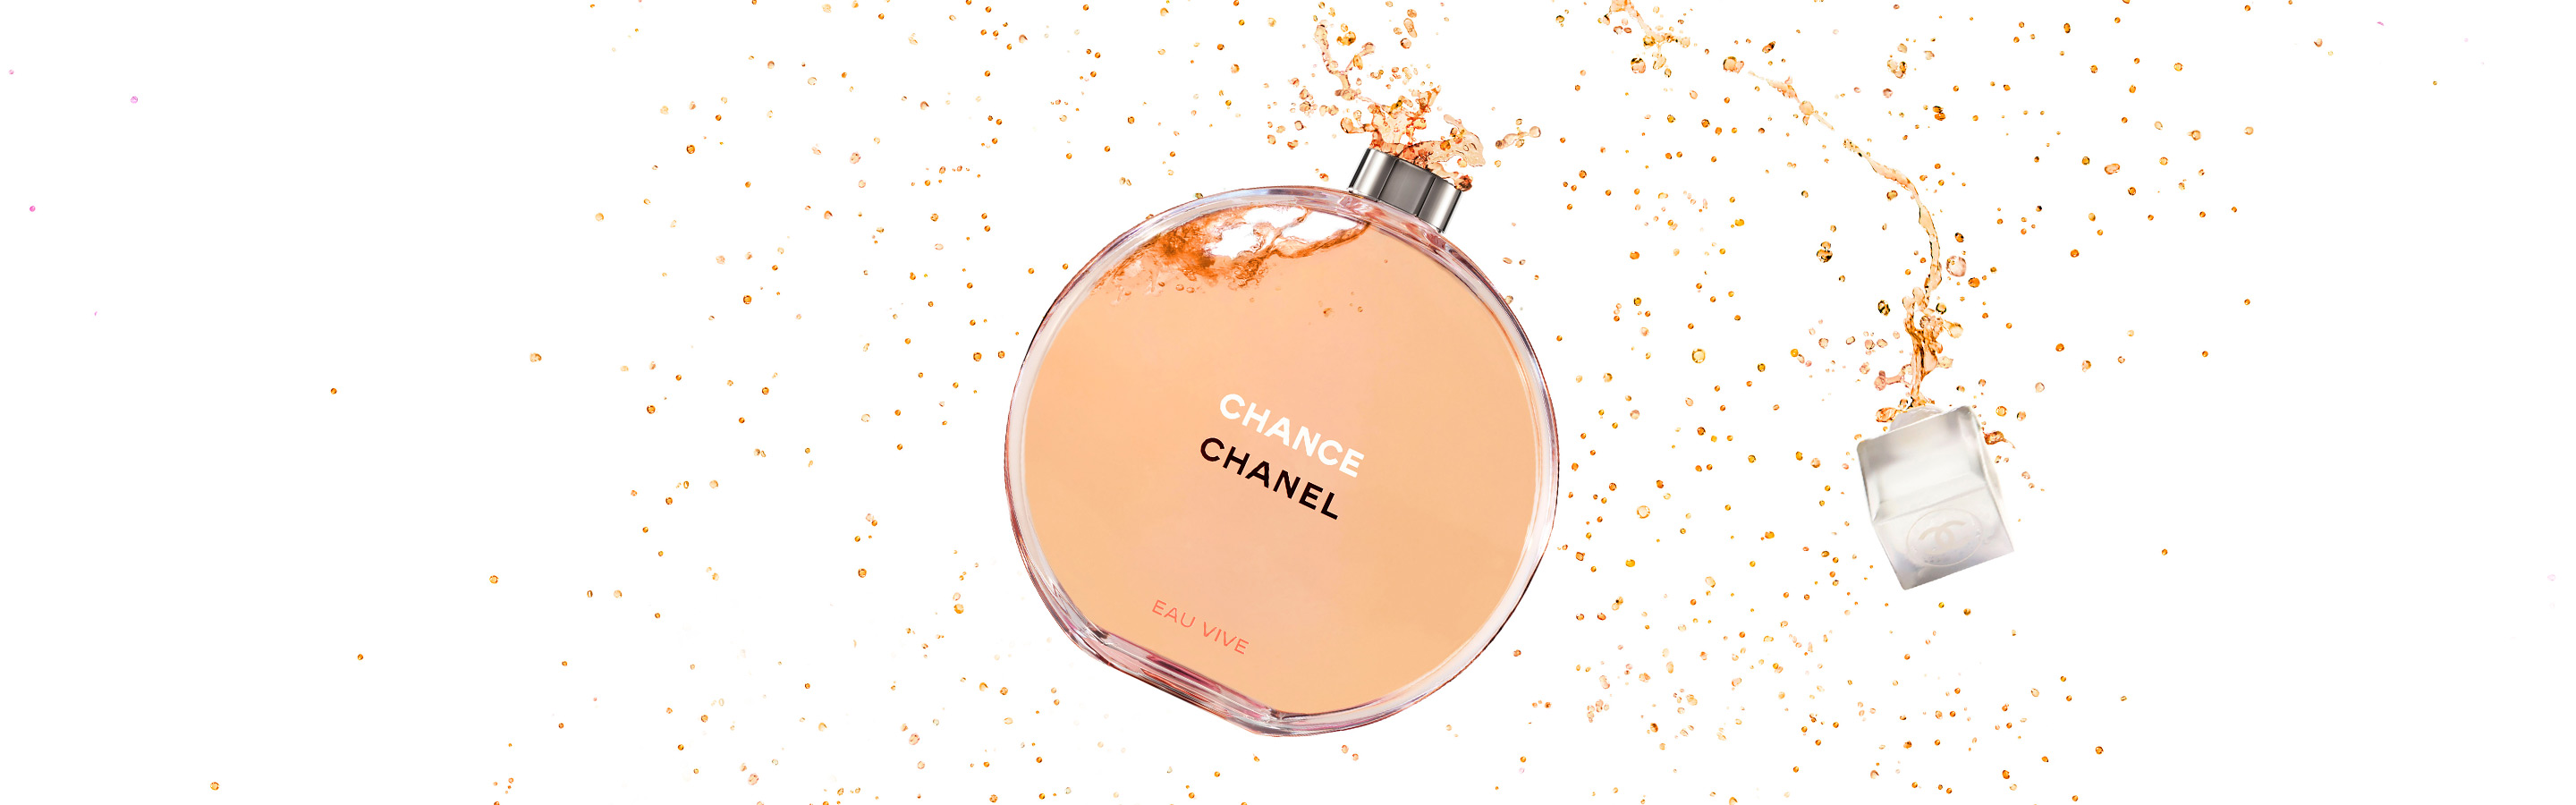 Chance Eau Vive - Fragrance | CHANEL